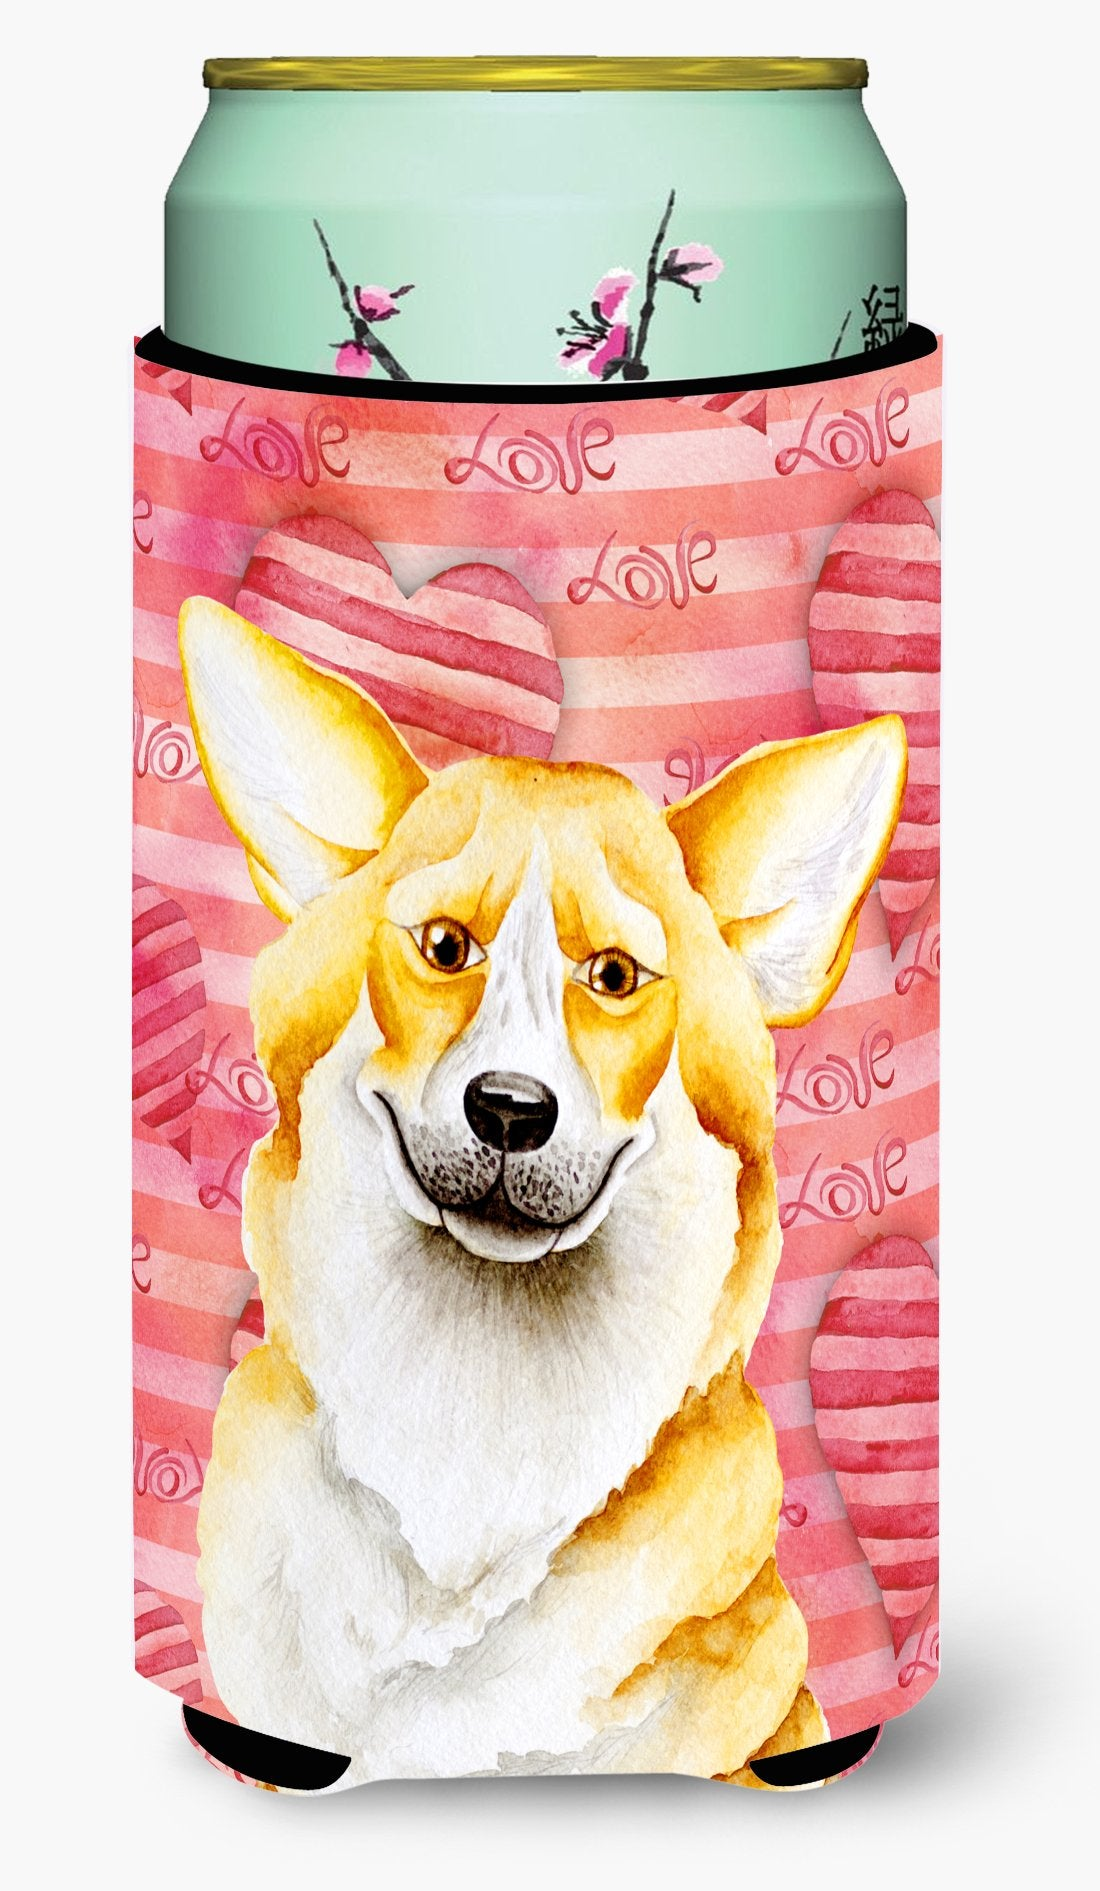 Corgi Love Tall Boy Beverage Insulator Hugger CK1390TBC by Caroline's Treasures